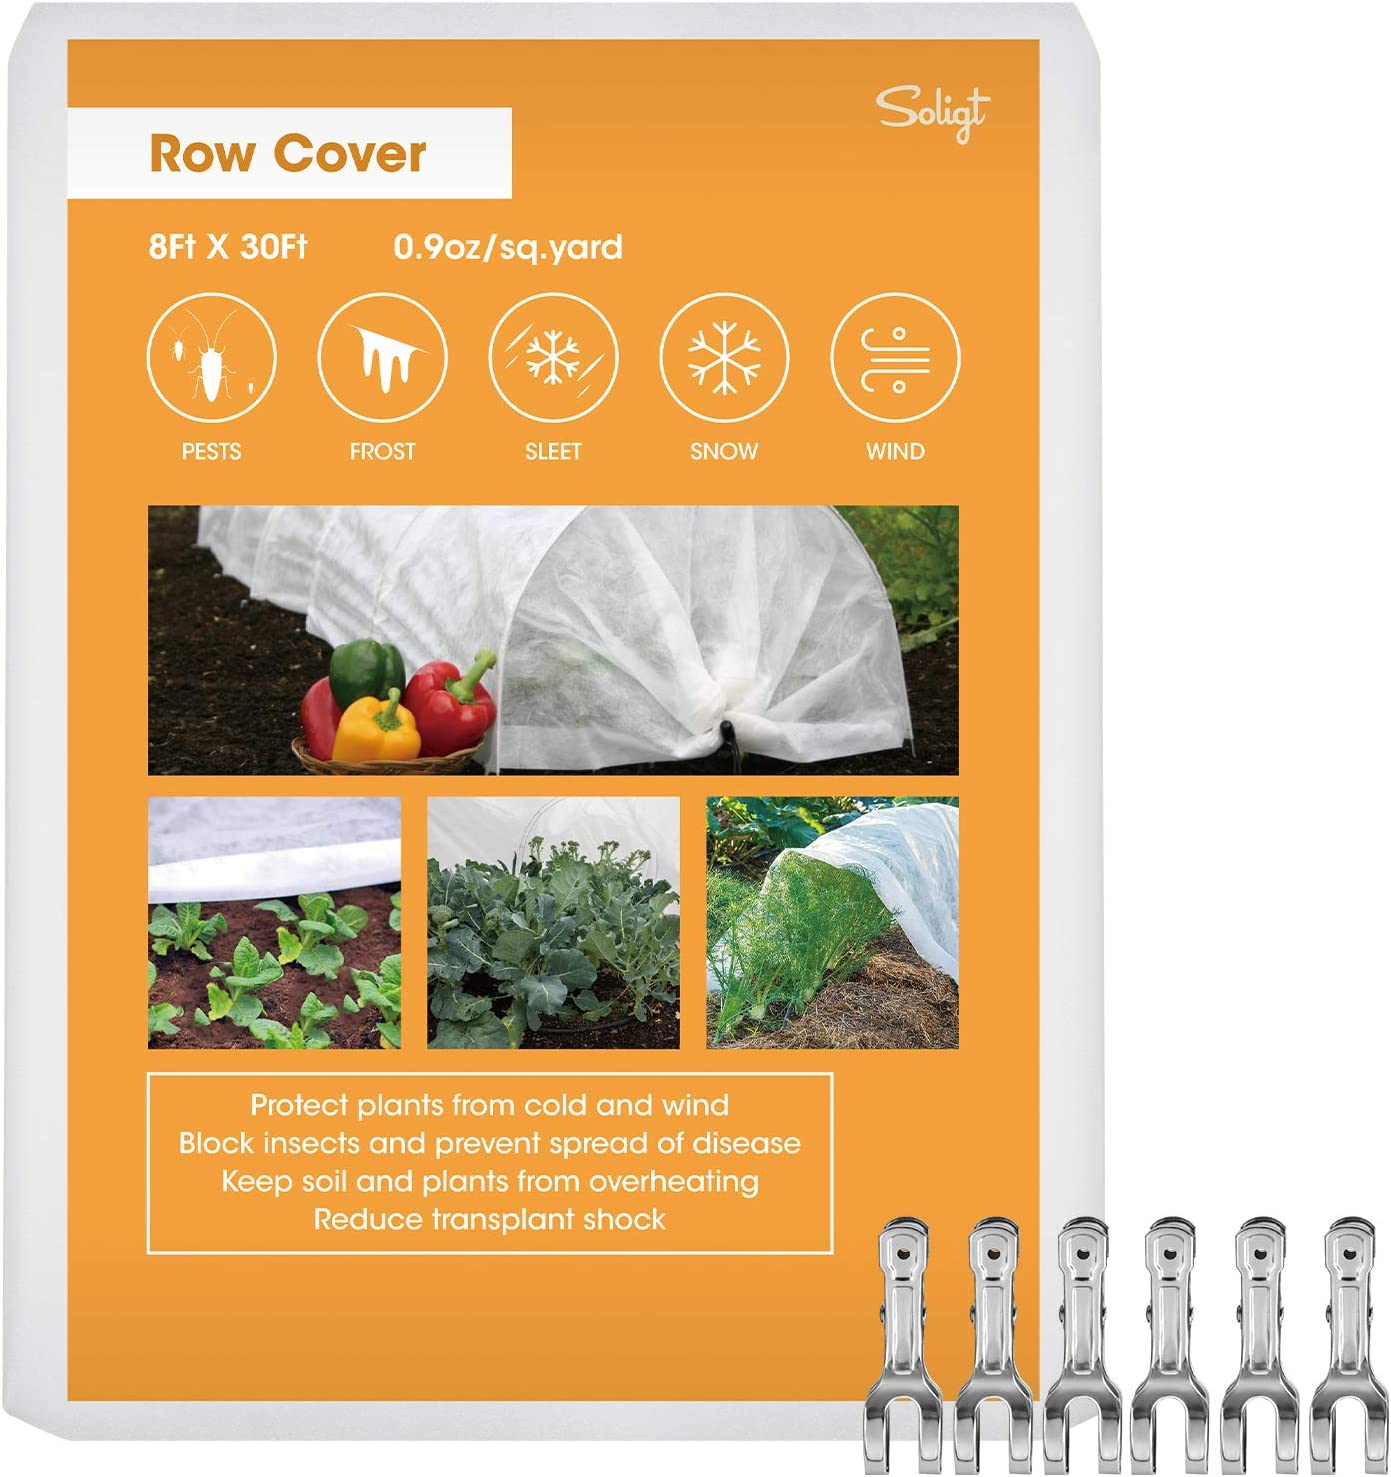 SOLIGT Row Cover Floating Plant Cover Freeze Protection 0.9oz Fabric Frost Cloth Blanket 8Ft X 30Ft with Pipe Clamps for Raised Beds & Garden Vegetable